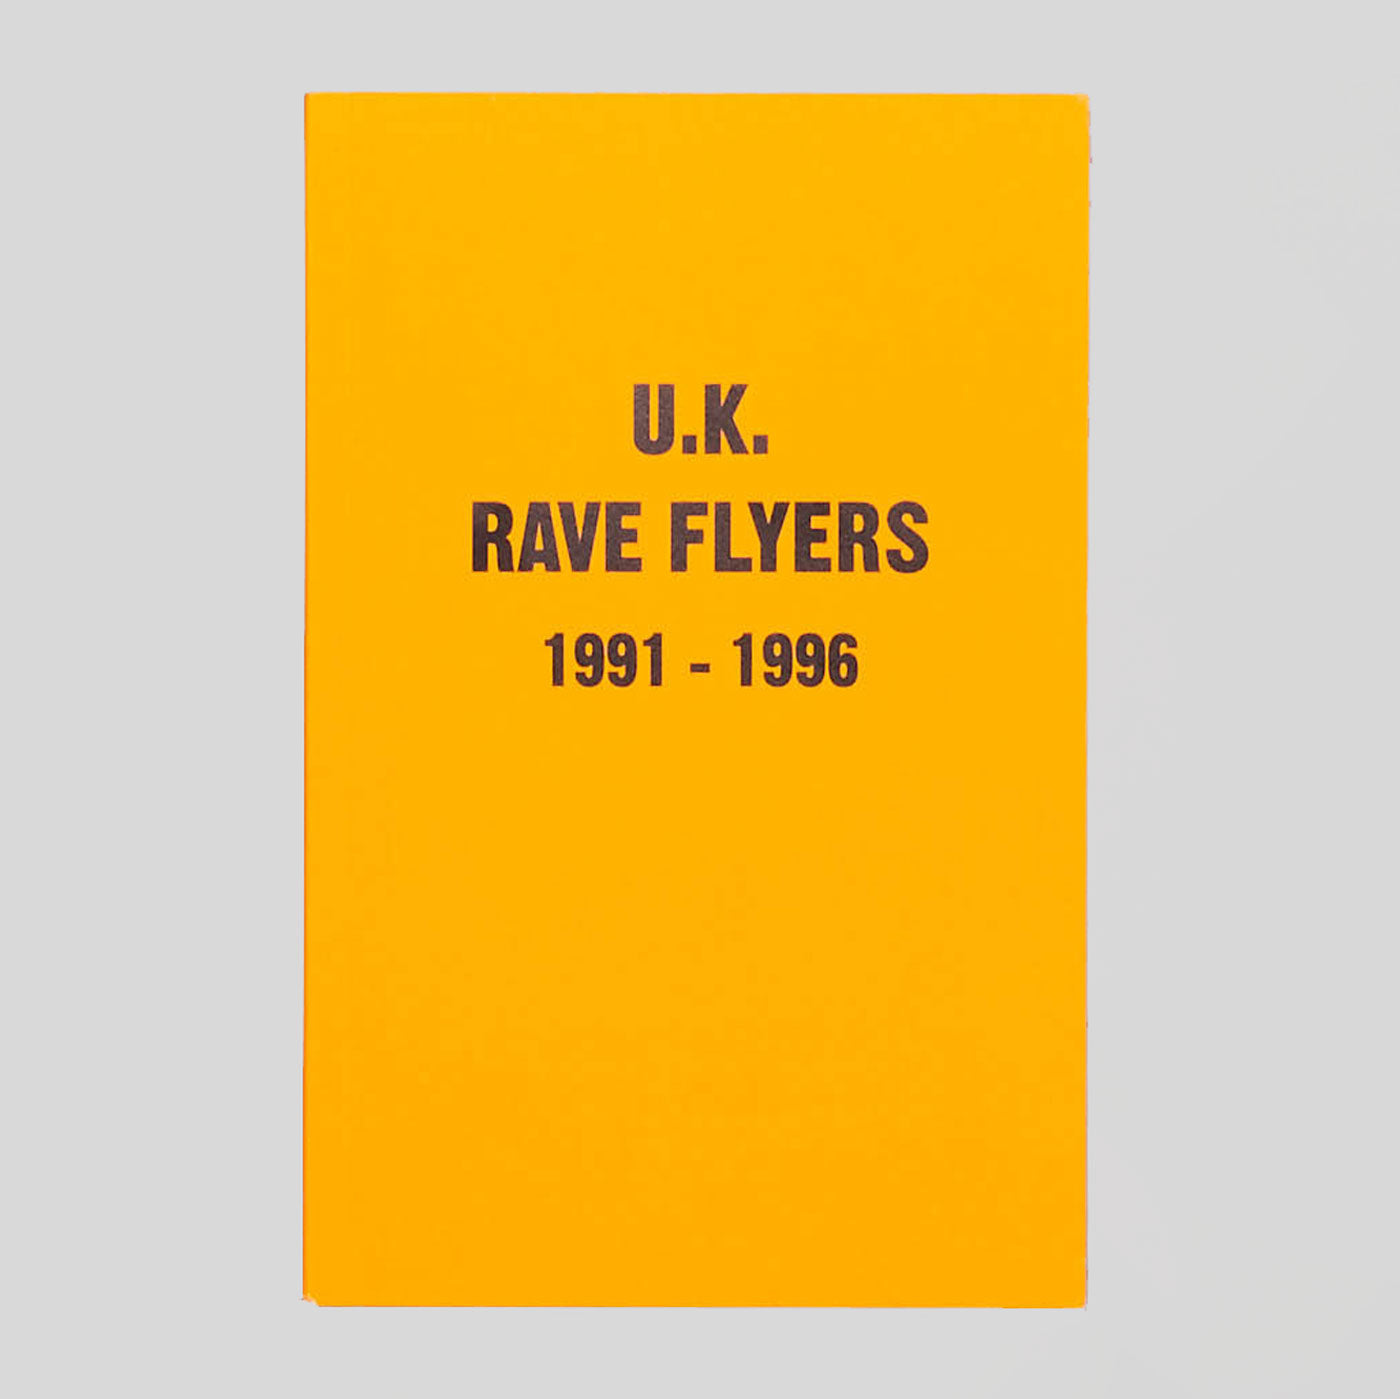 UK Rave Flyers 1991-1996 by Stefania Fiorendi and Junior Tomlin